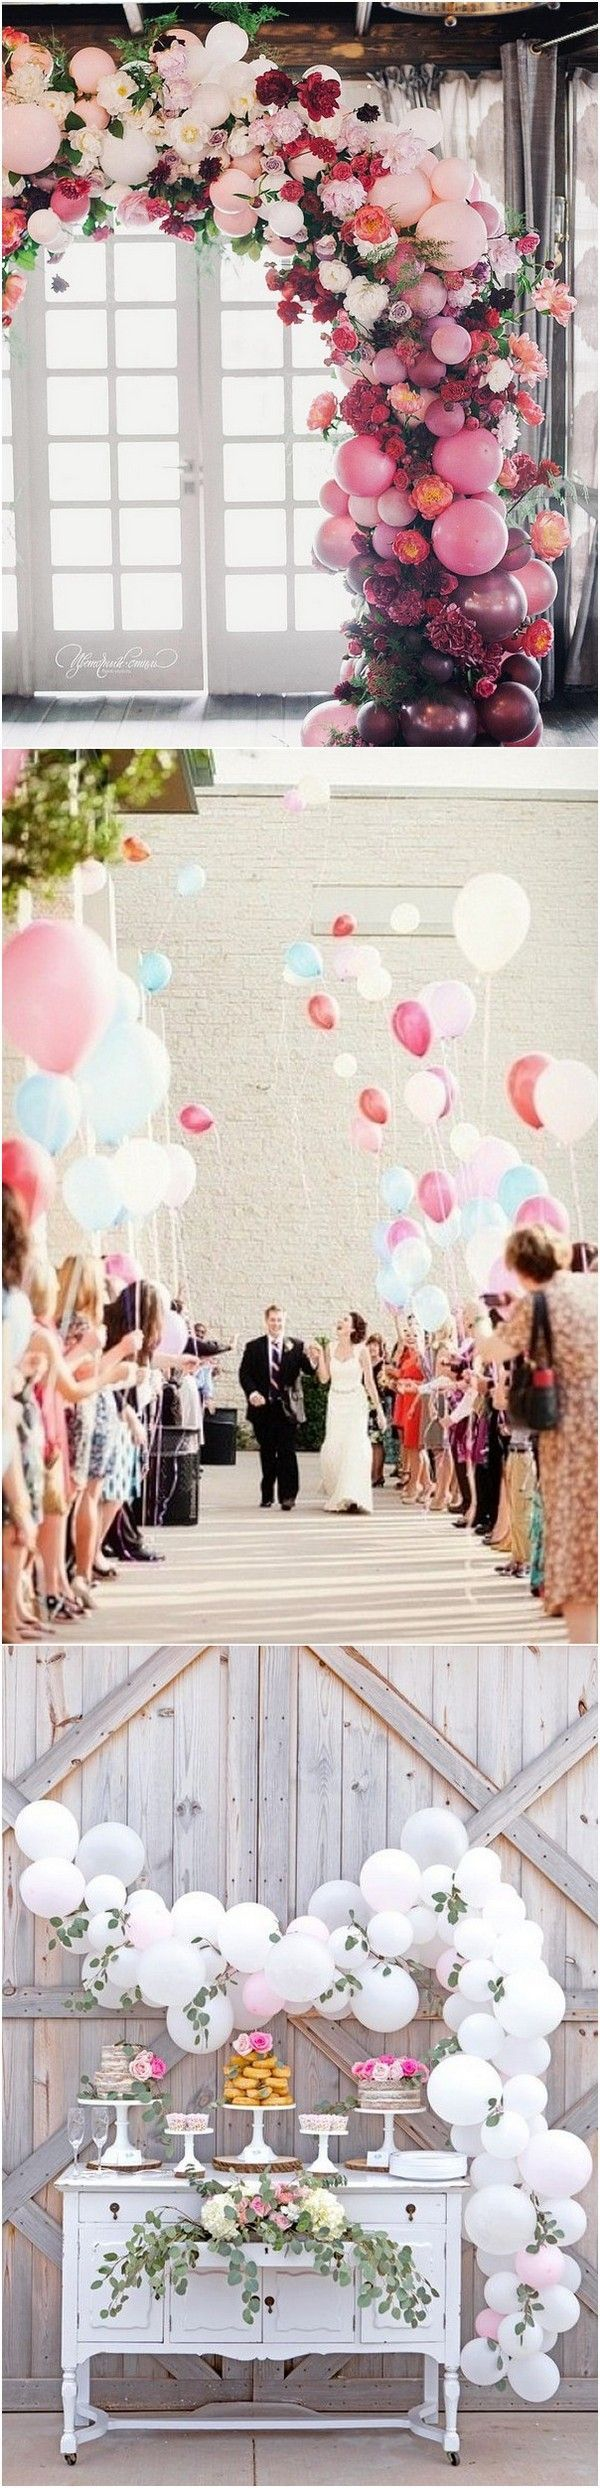 Pink and maroon wedding decor   Romantic Wedding Decoration Ideas with Balloons  Dessert table